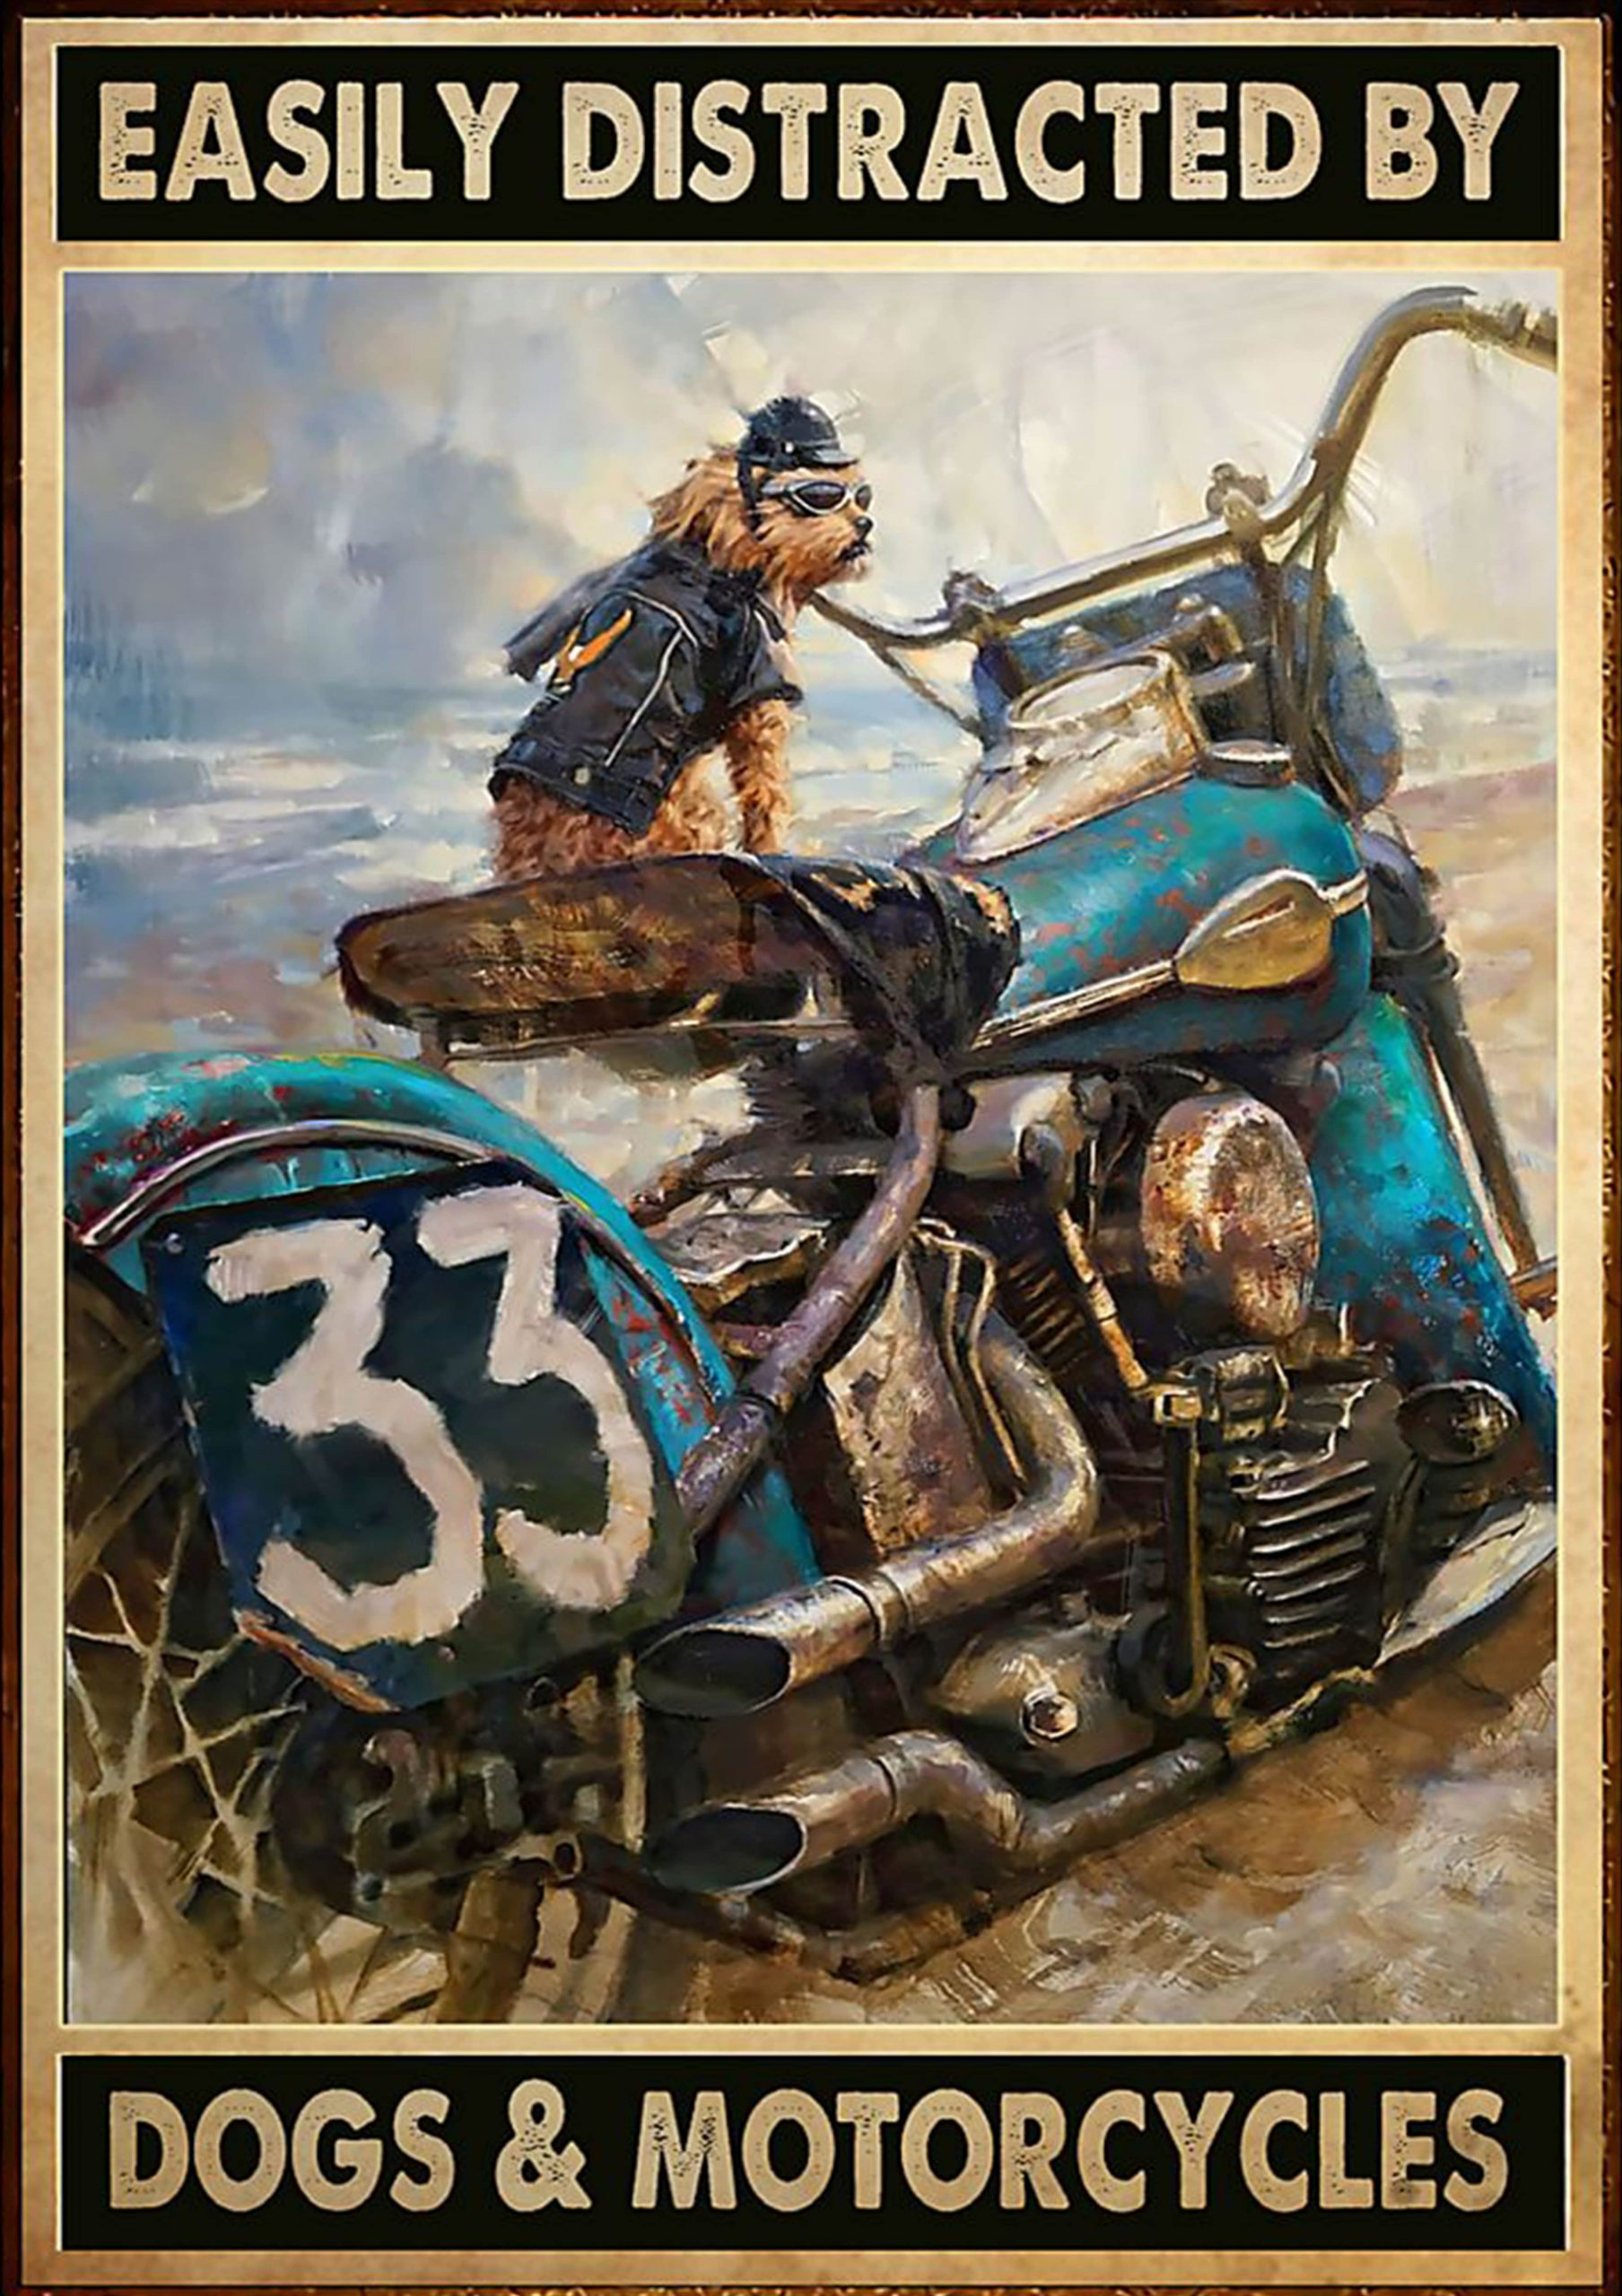 vintage easily distracted by dogs and motorcycles poster 1 - Copy (2)